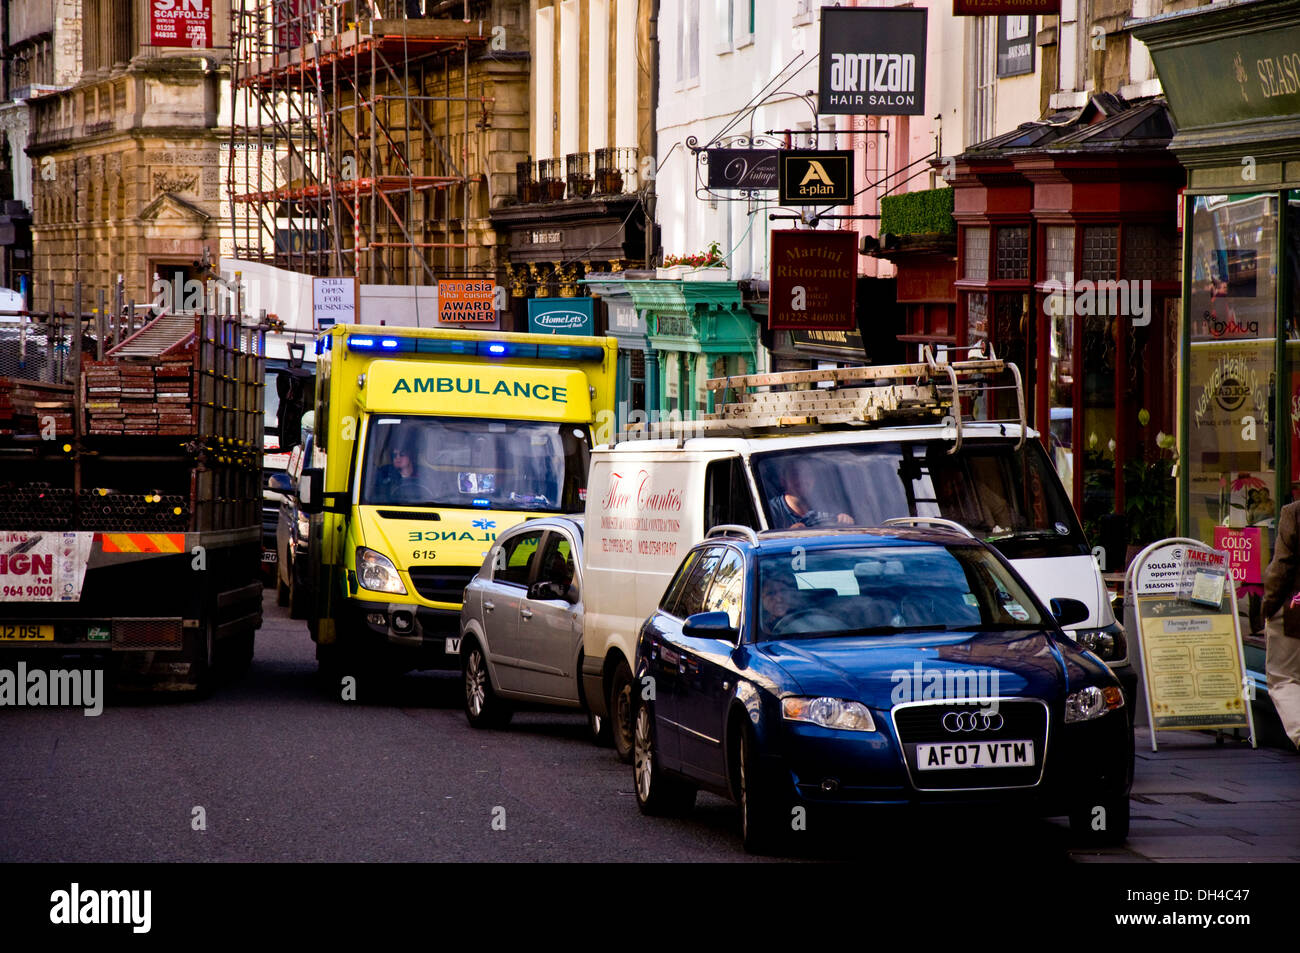 Ambulance on emergency call trying to squeeze through congested traffic on a busy street in Bath Somerset England - Stock Image